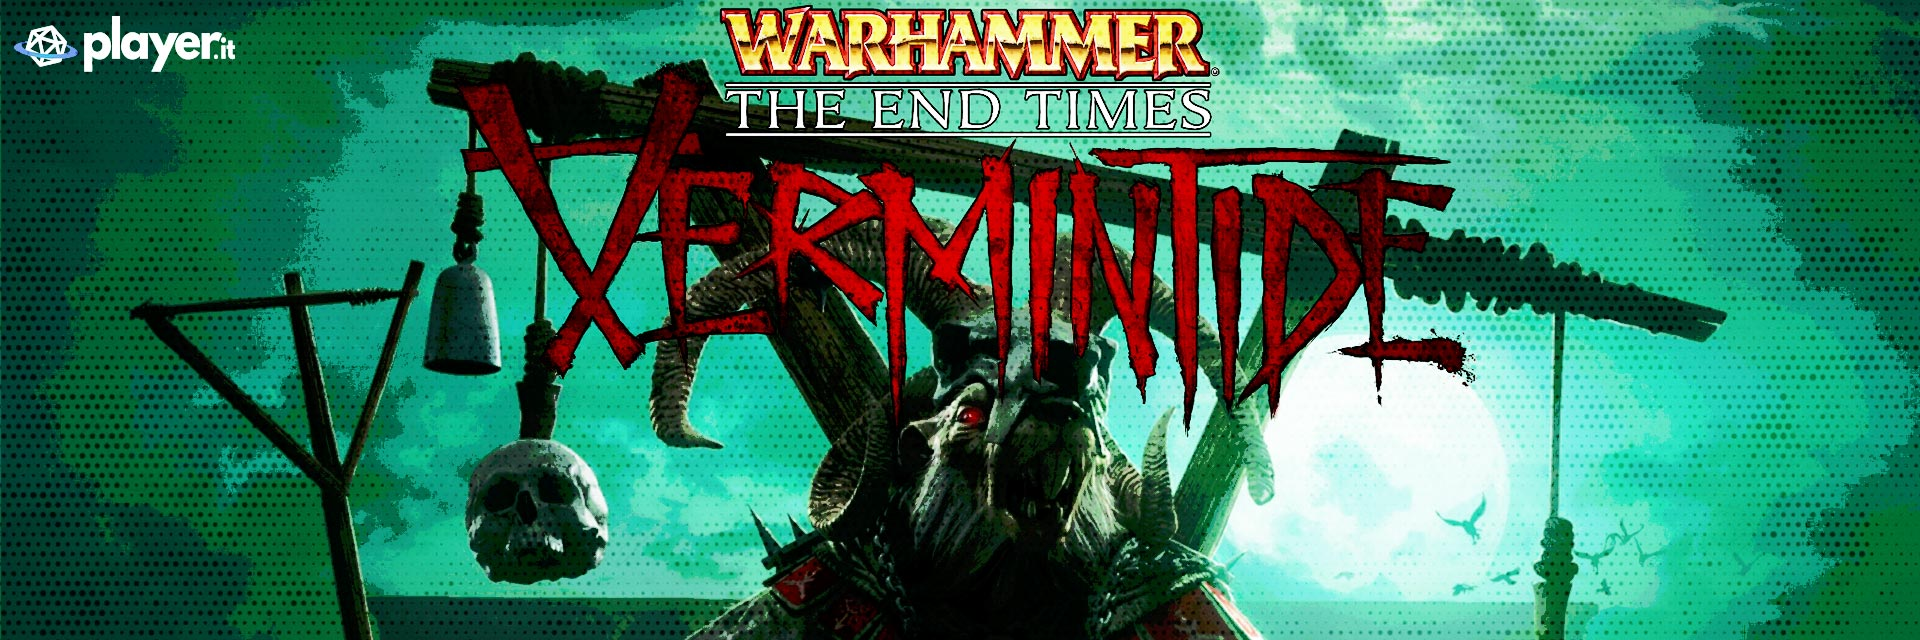 immagine in evidenza del gioco Warhammer: The End Times - Vermintide